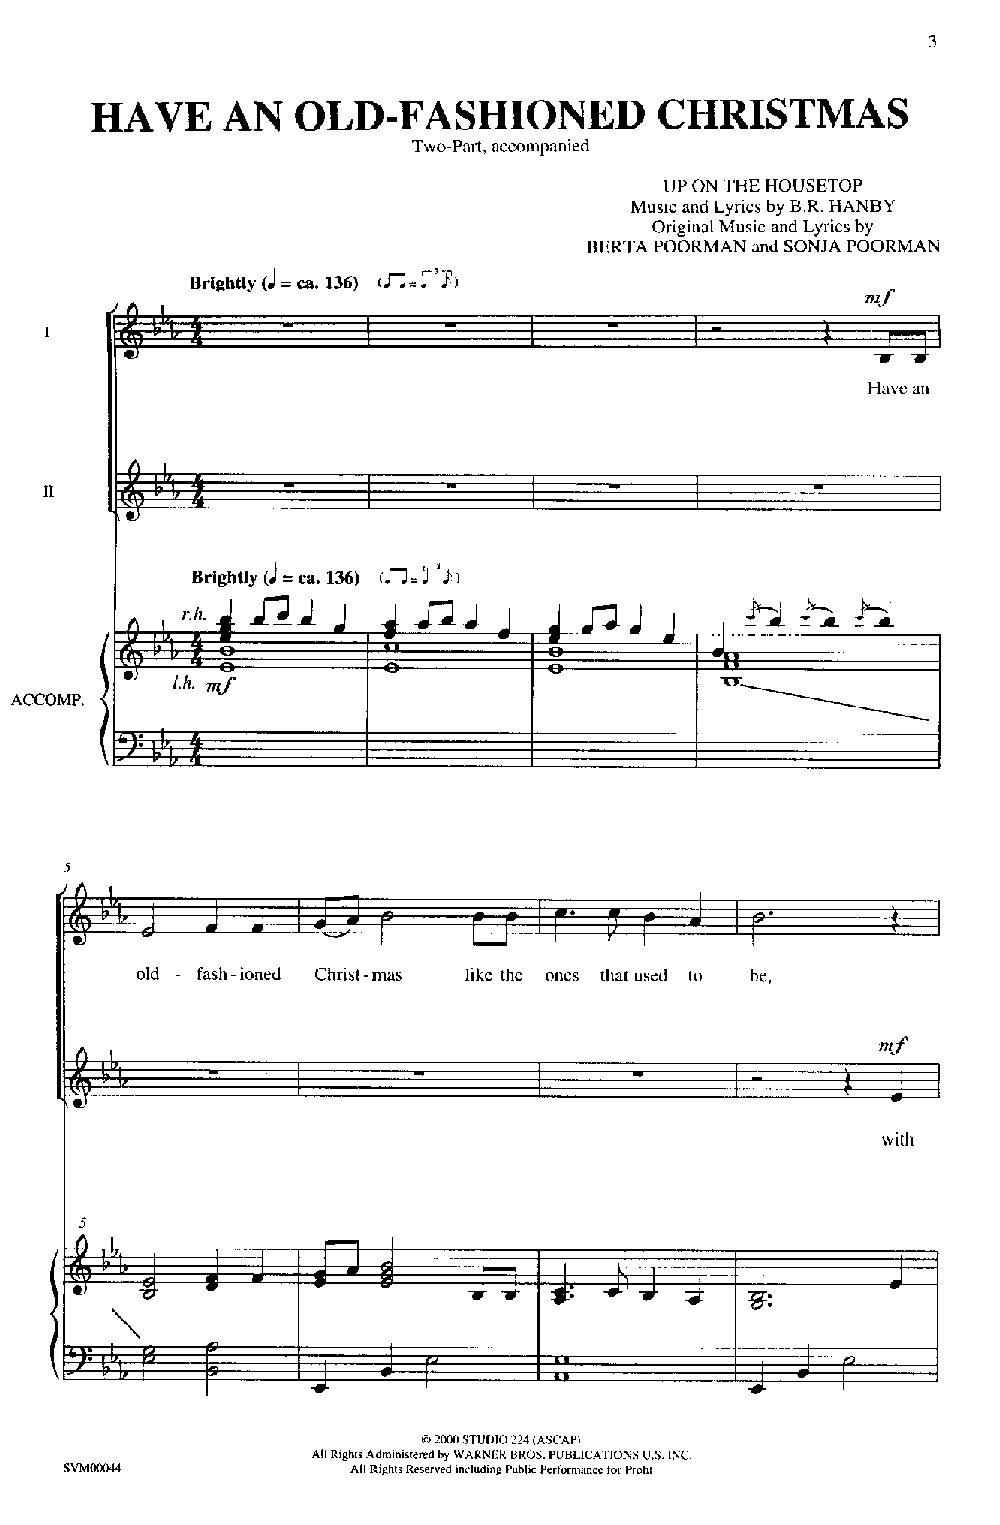 Old Fashioned Christmas (Two-Part ) by POORM | J.W. Pepper Sheet Music